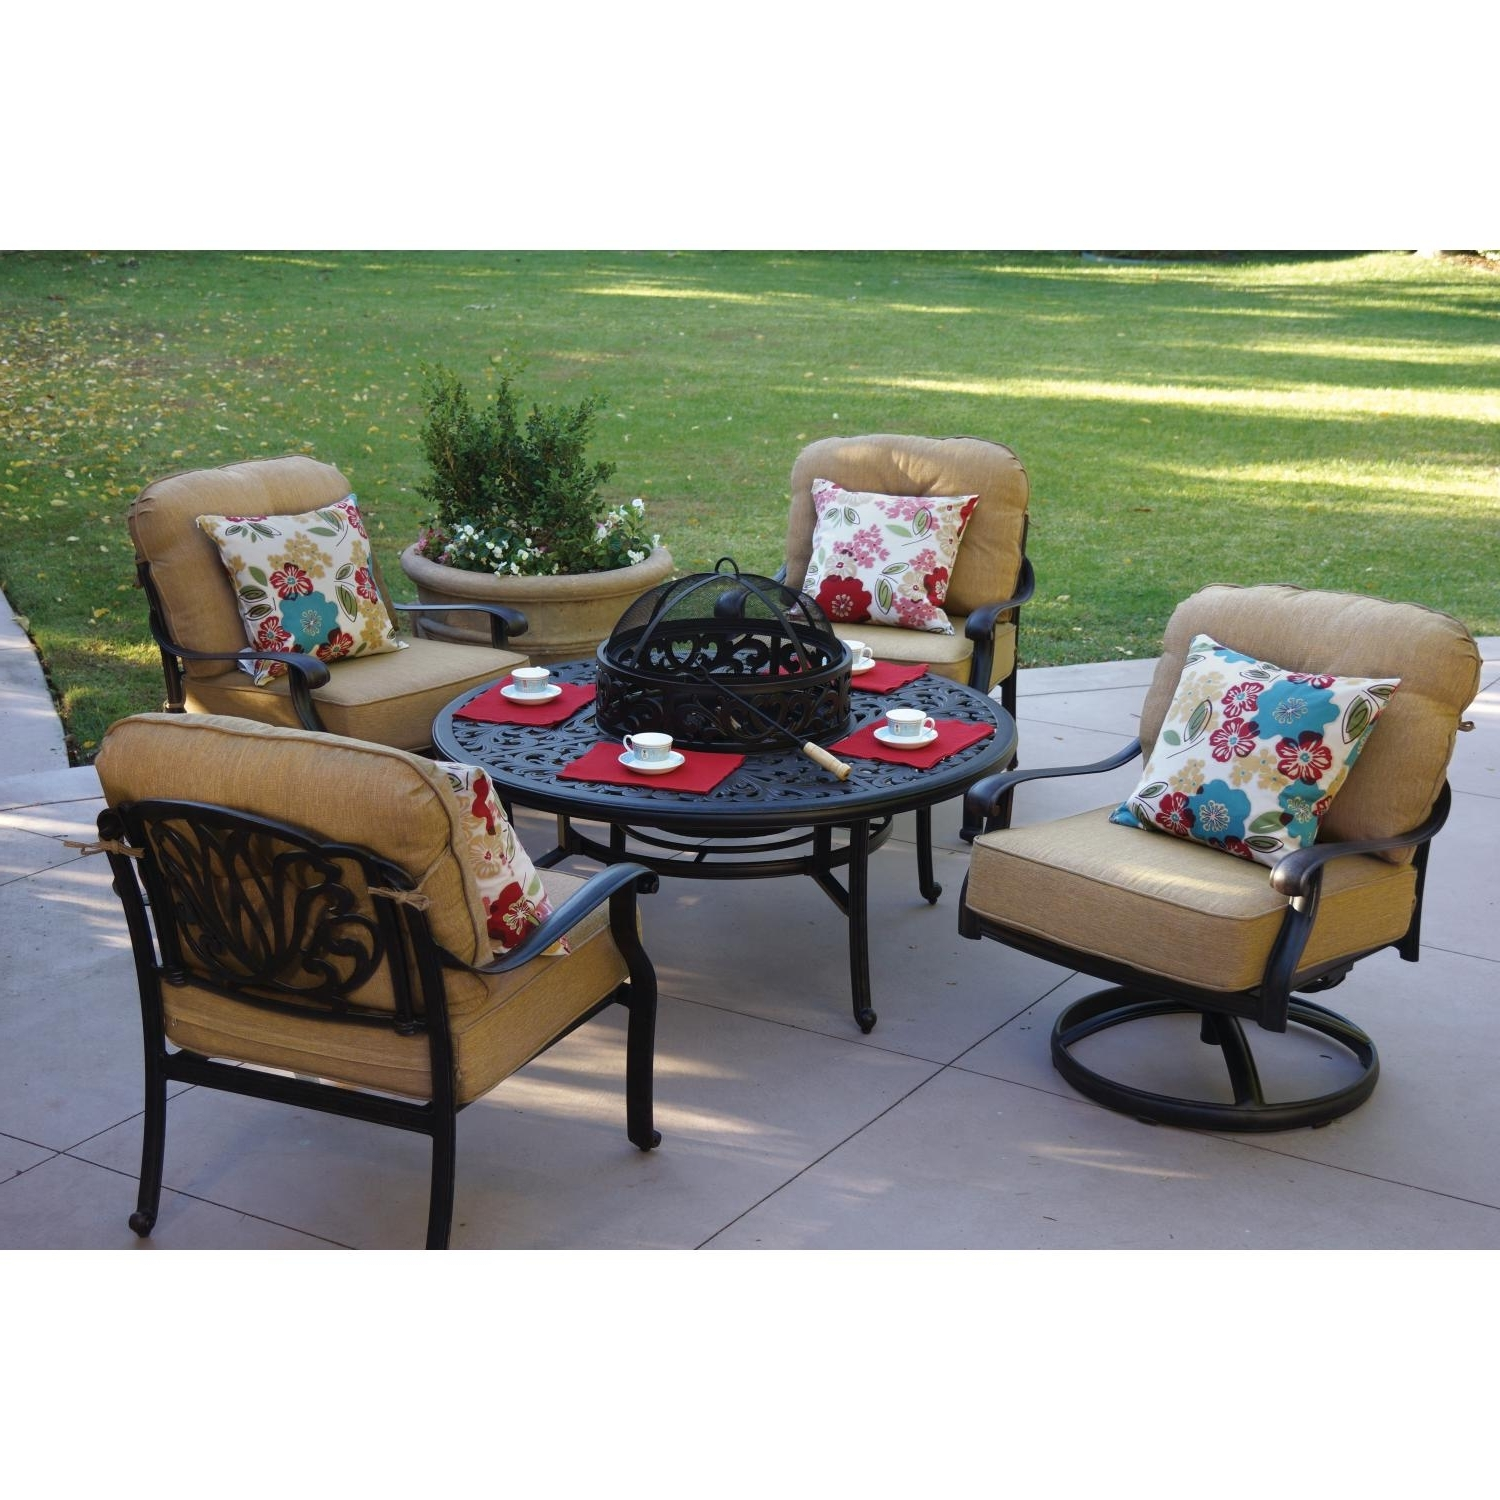 Preferred Darlee Elisabeth 5 Piece Patio Fire Pit Conversation Seating Set Intended For 5 Piece Patio Conversation Sets (View 9 of 15)